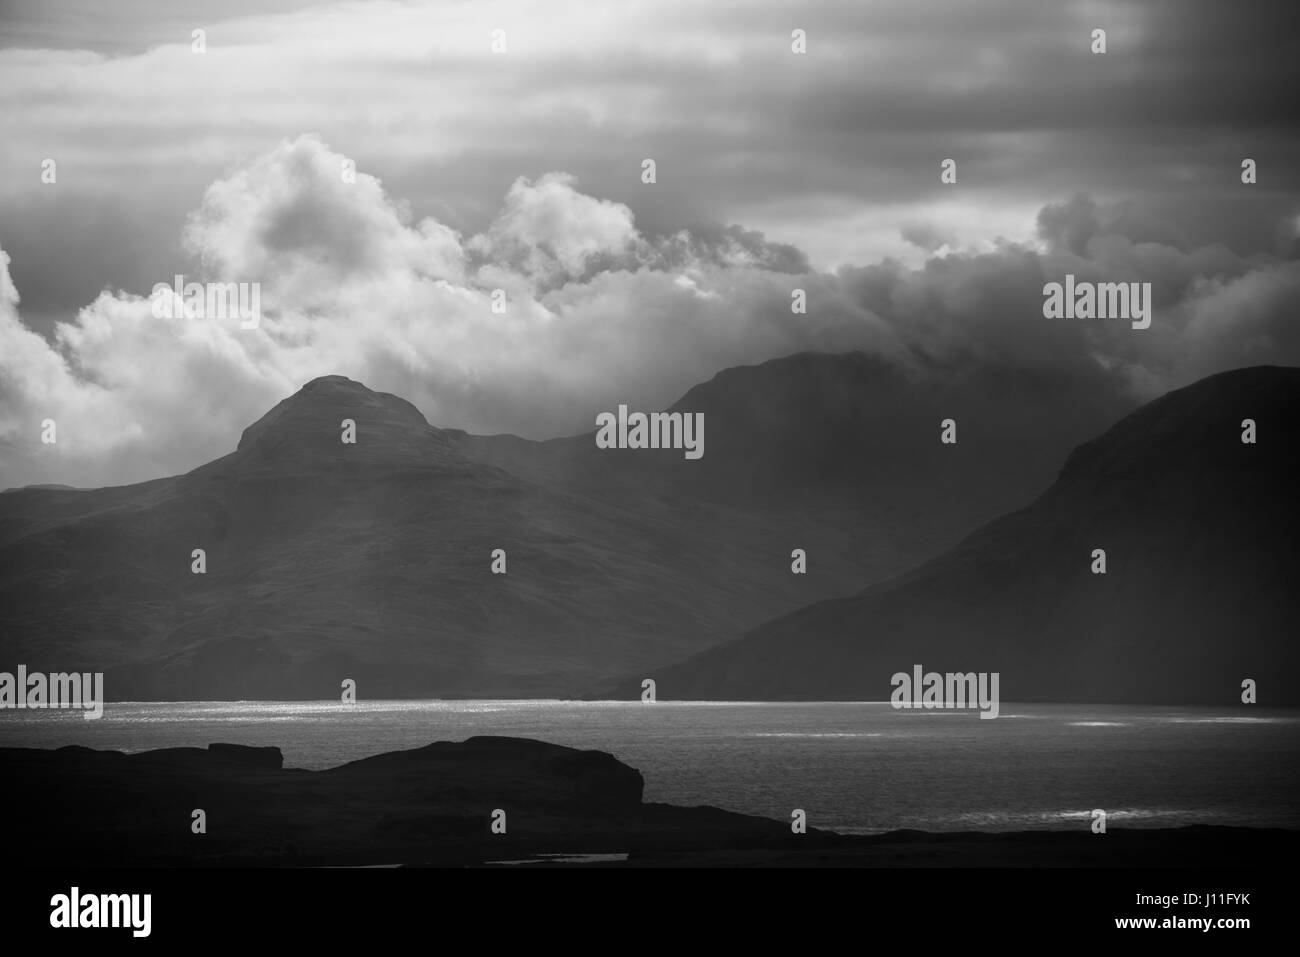 Clouds and mist over the island of Rum viewed from Canna Island, inner hebrides, Scotland - Stock Image